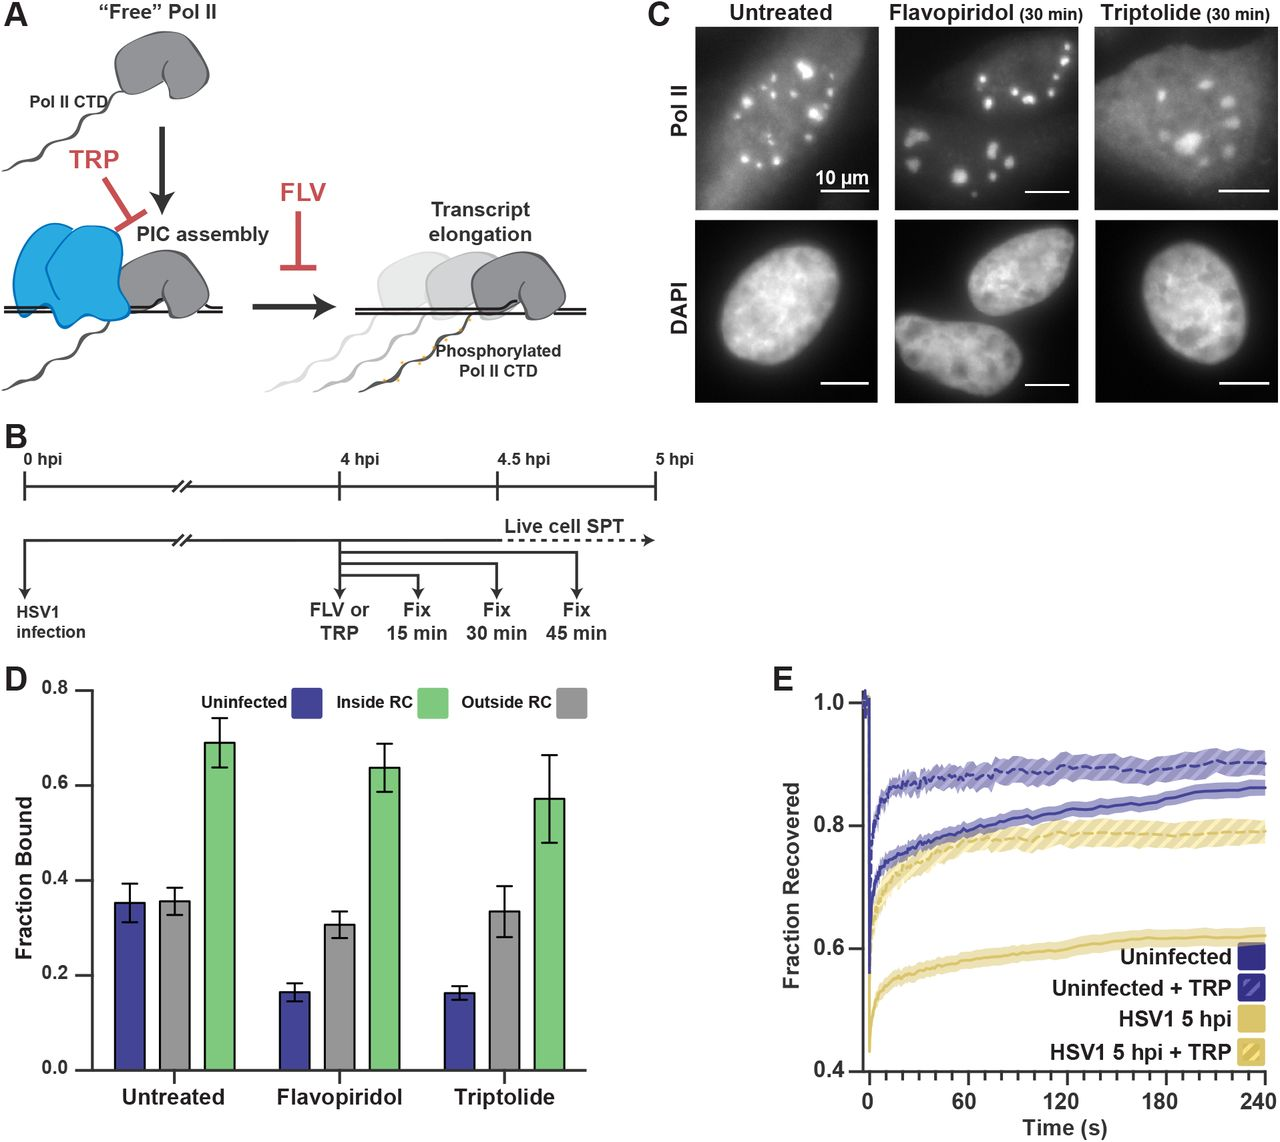 Transient DNA Binding Induces RNA Polymerase II Compartmentalization